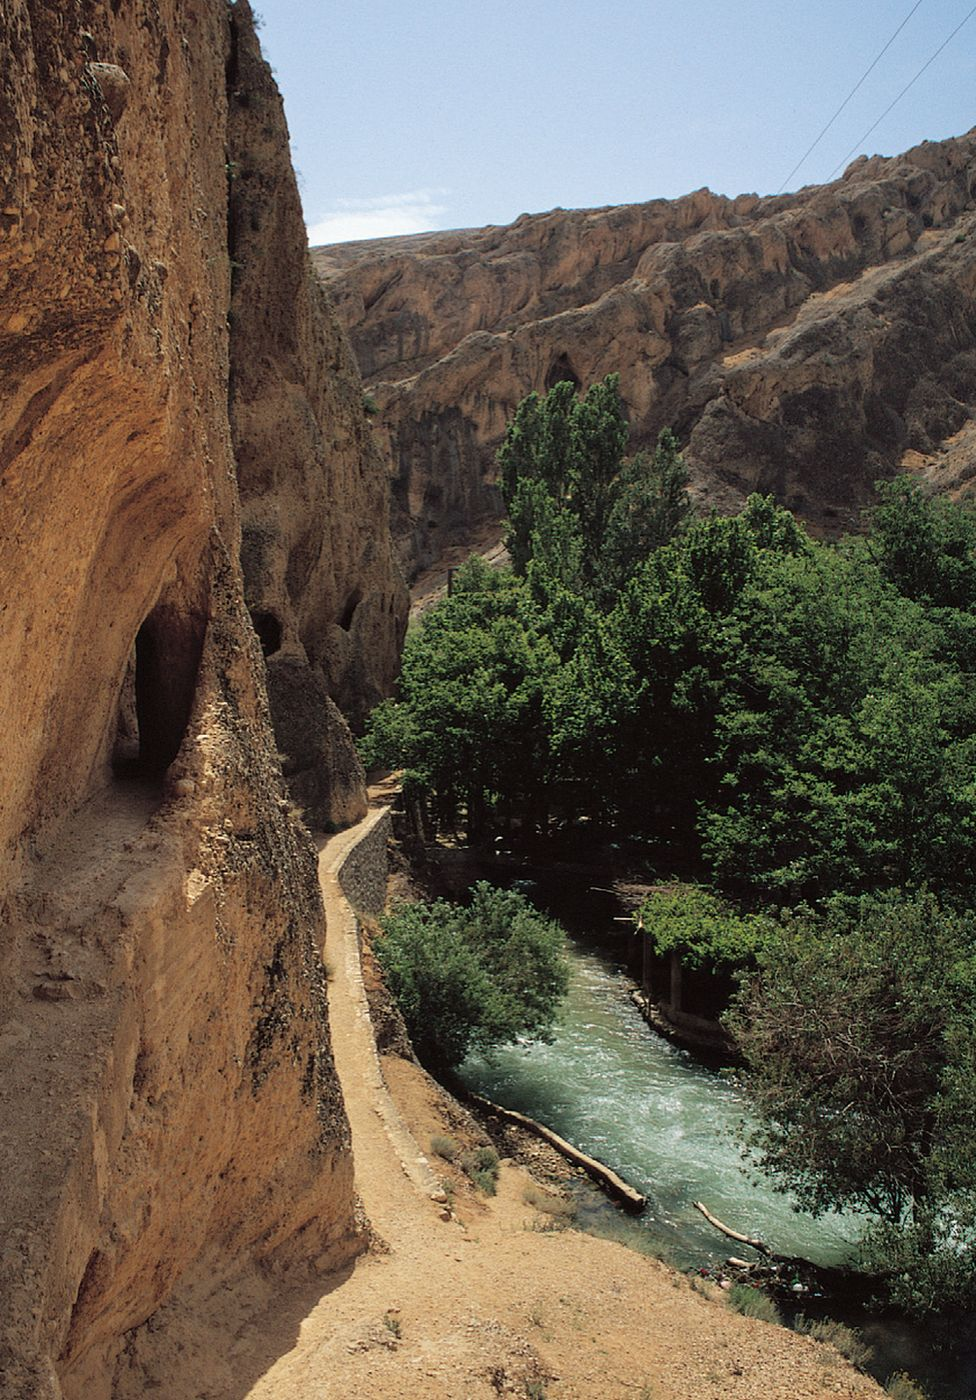 Barada river and Gorge with Roman aqueduct system in cliffs